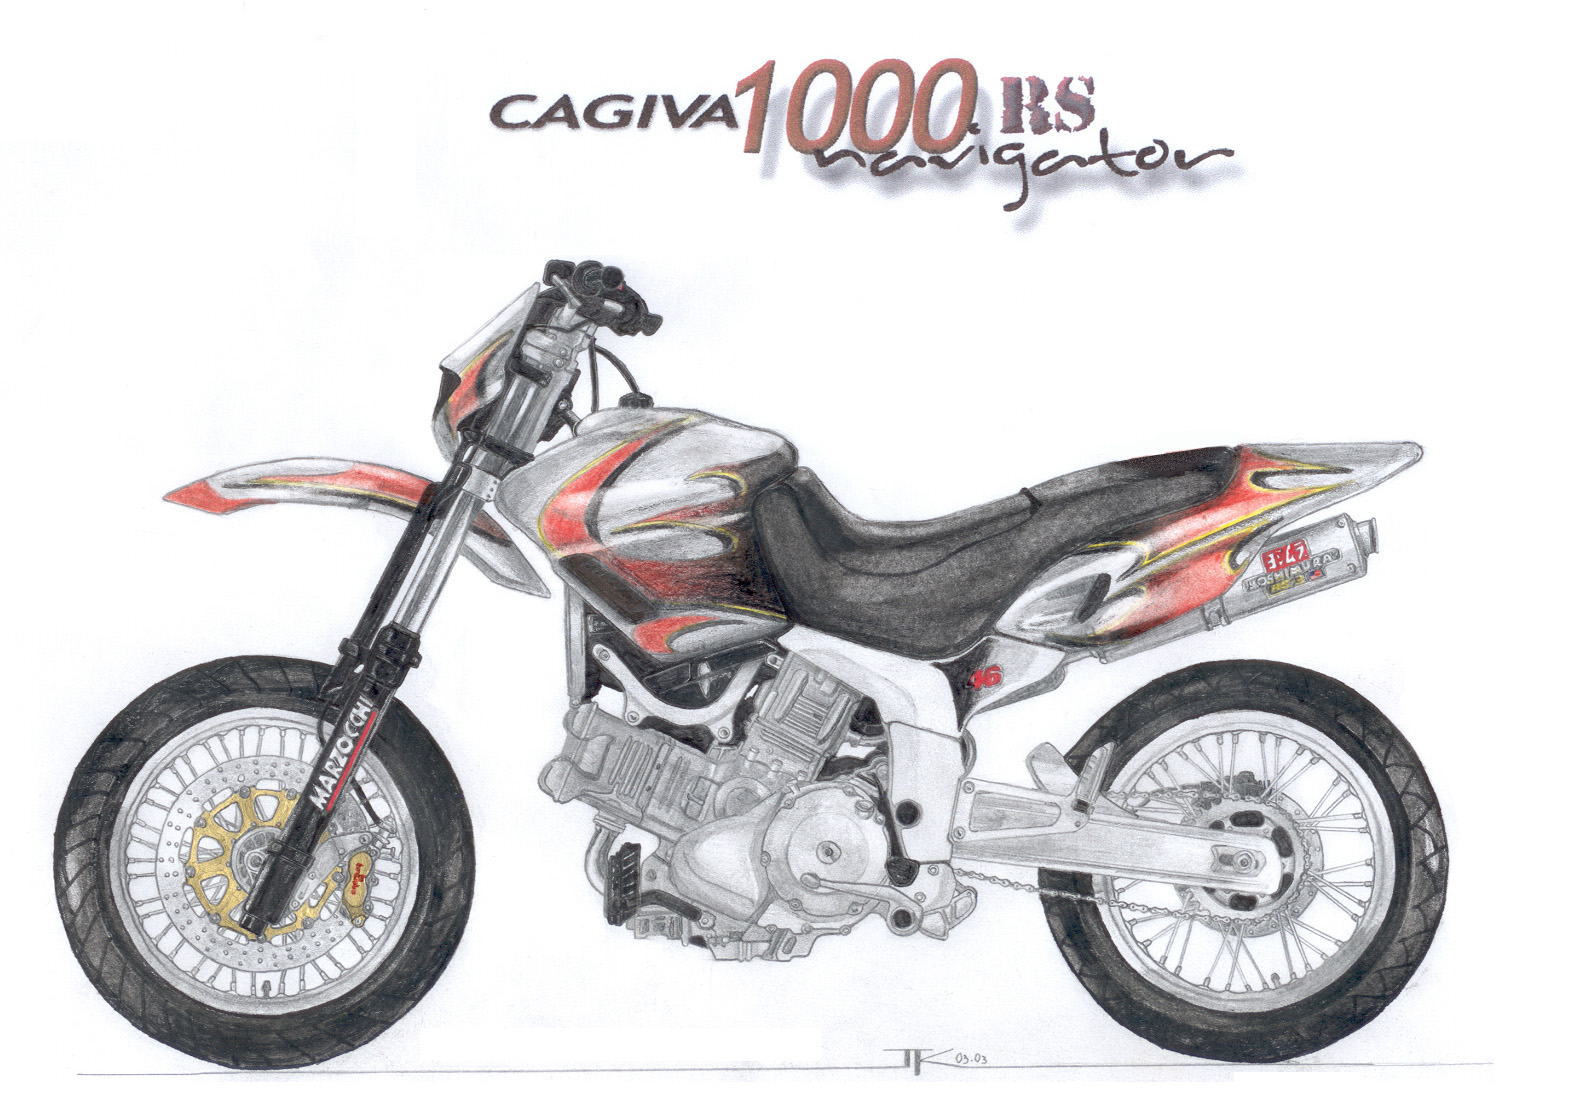 Cagiva Navigator 1000 images #162857